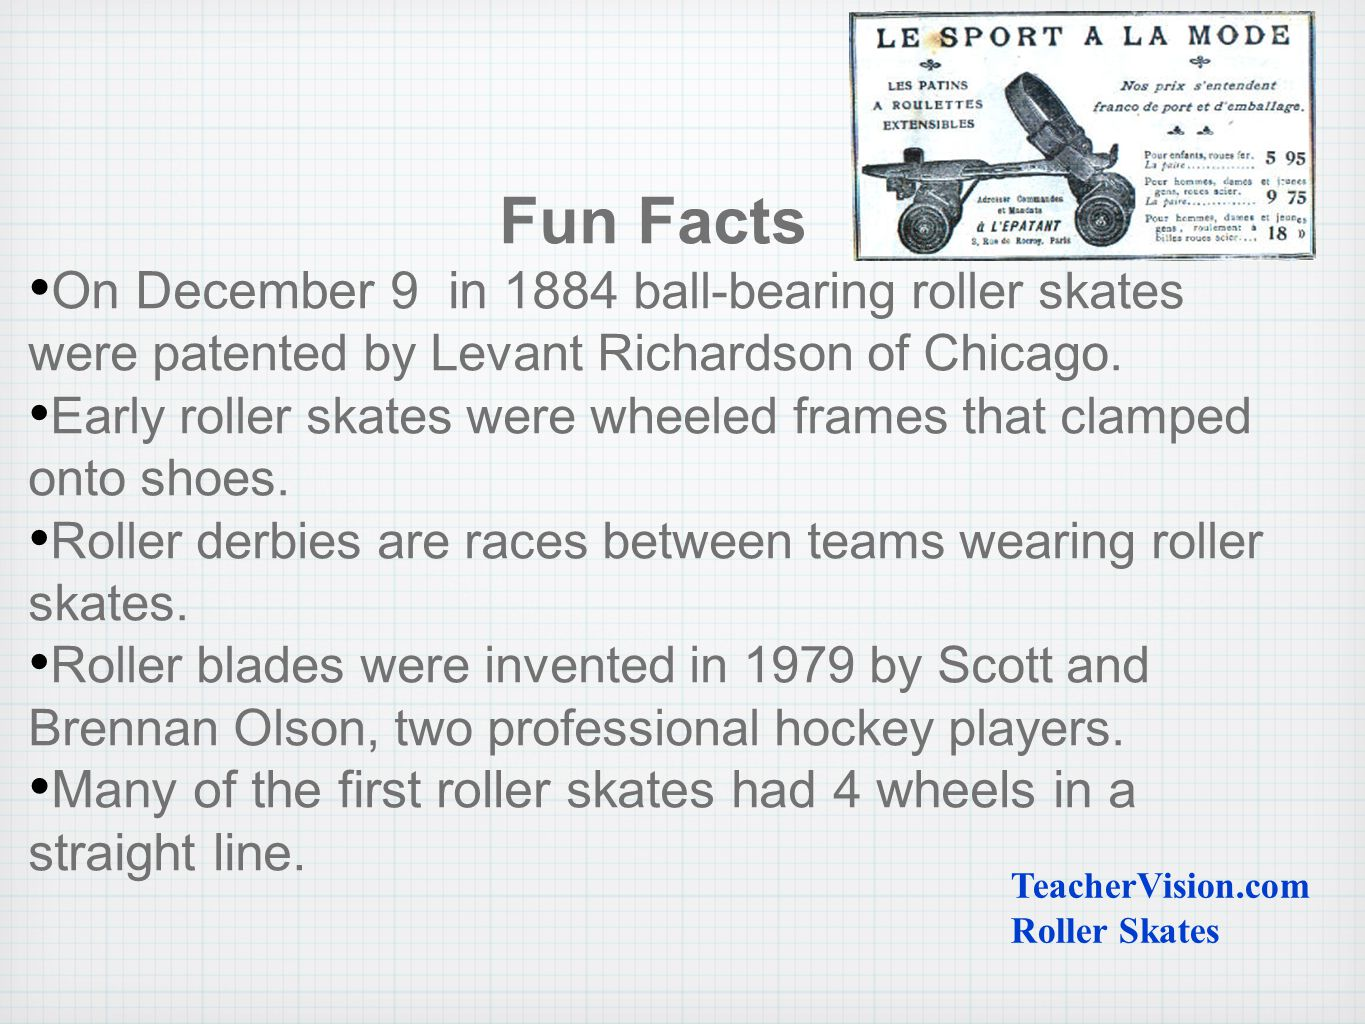 Fun Facts On December 9 in 1884 ball-bearing roller skates were patented by Levant Richardson of Chicago.